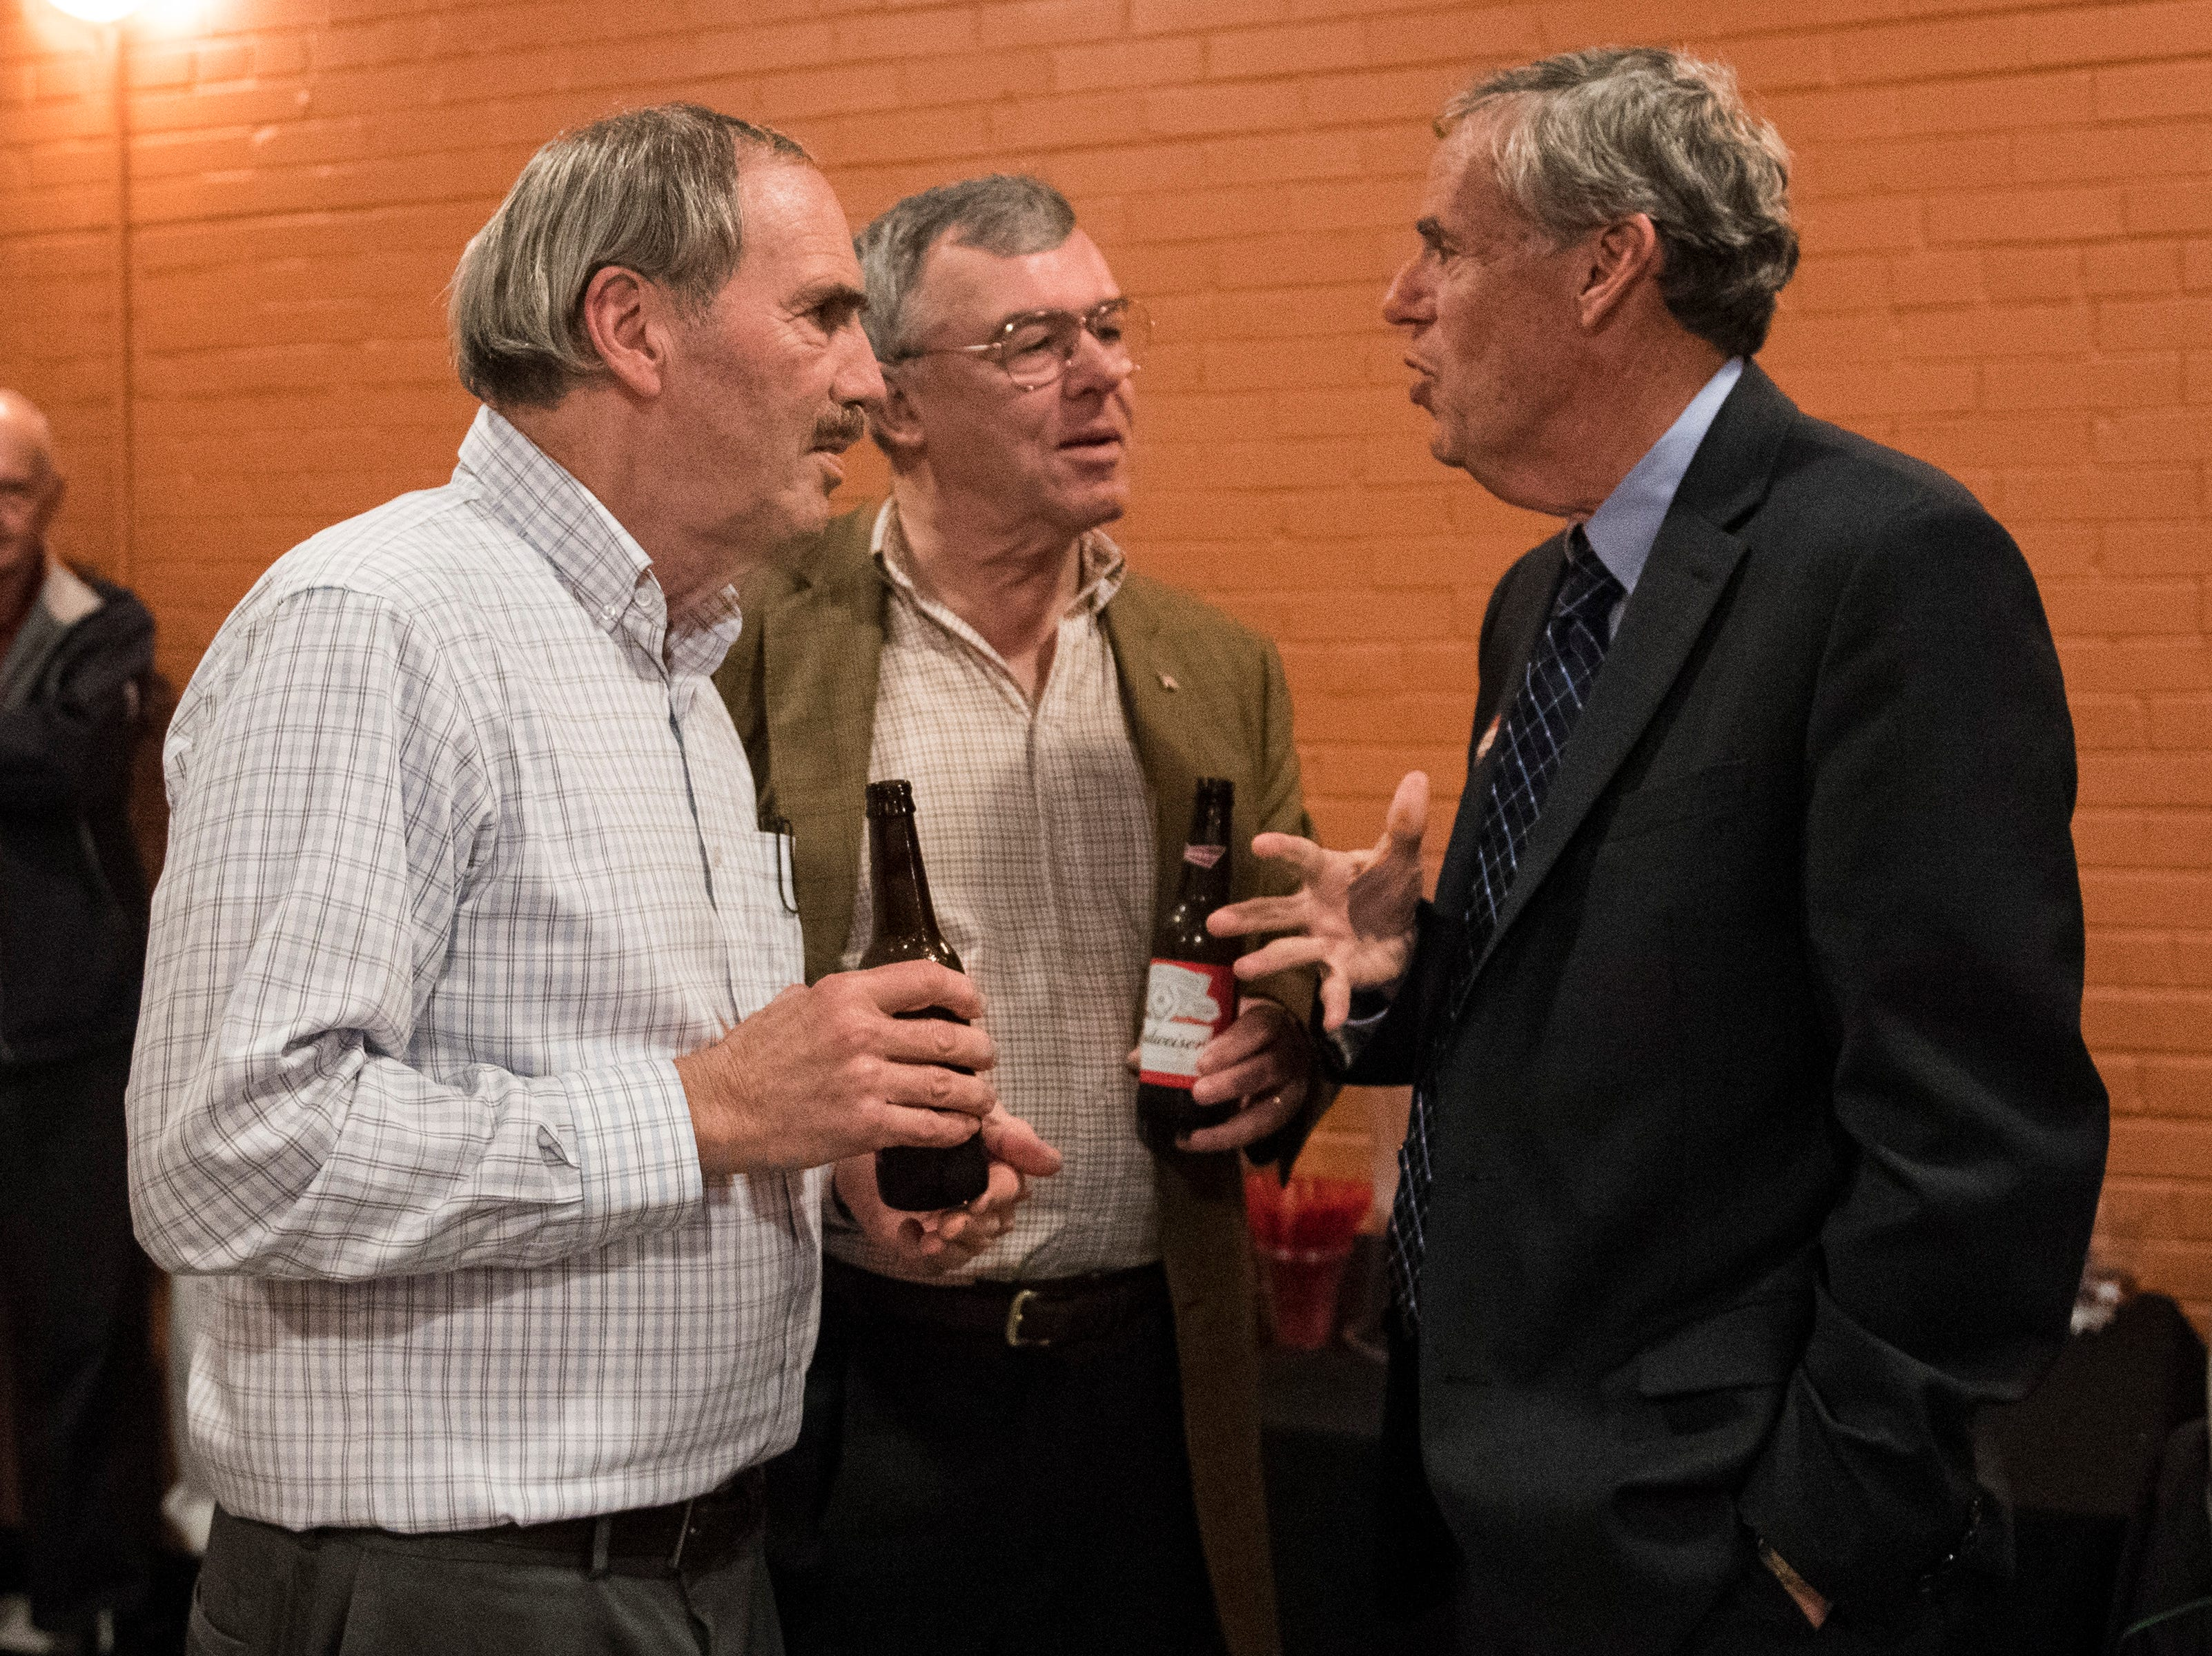 Stan Levco chats with college friends Bob Gaudet, left, and Jim Collins, middle, while attending the Vanderburgh County Democratic watch party held at DiLegge's Restaurant Tuesday Nov. 6, 2018.